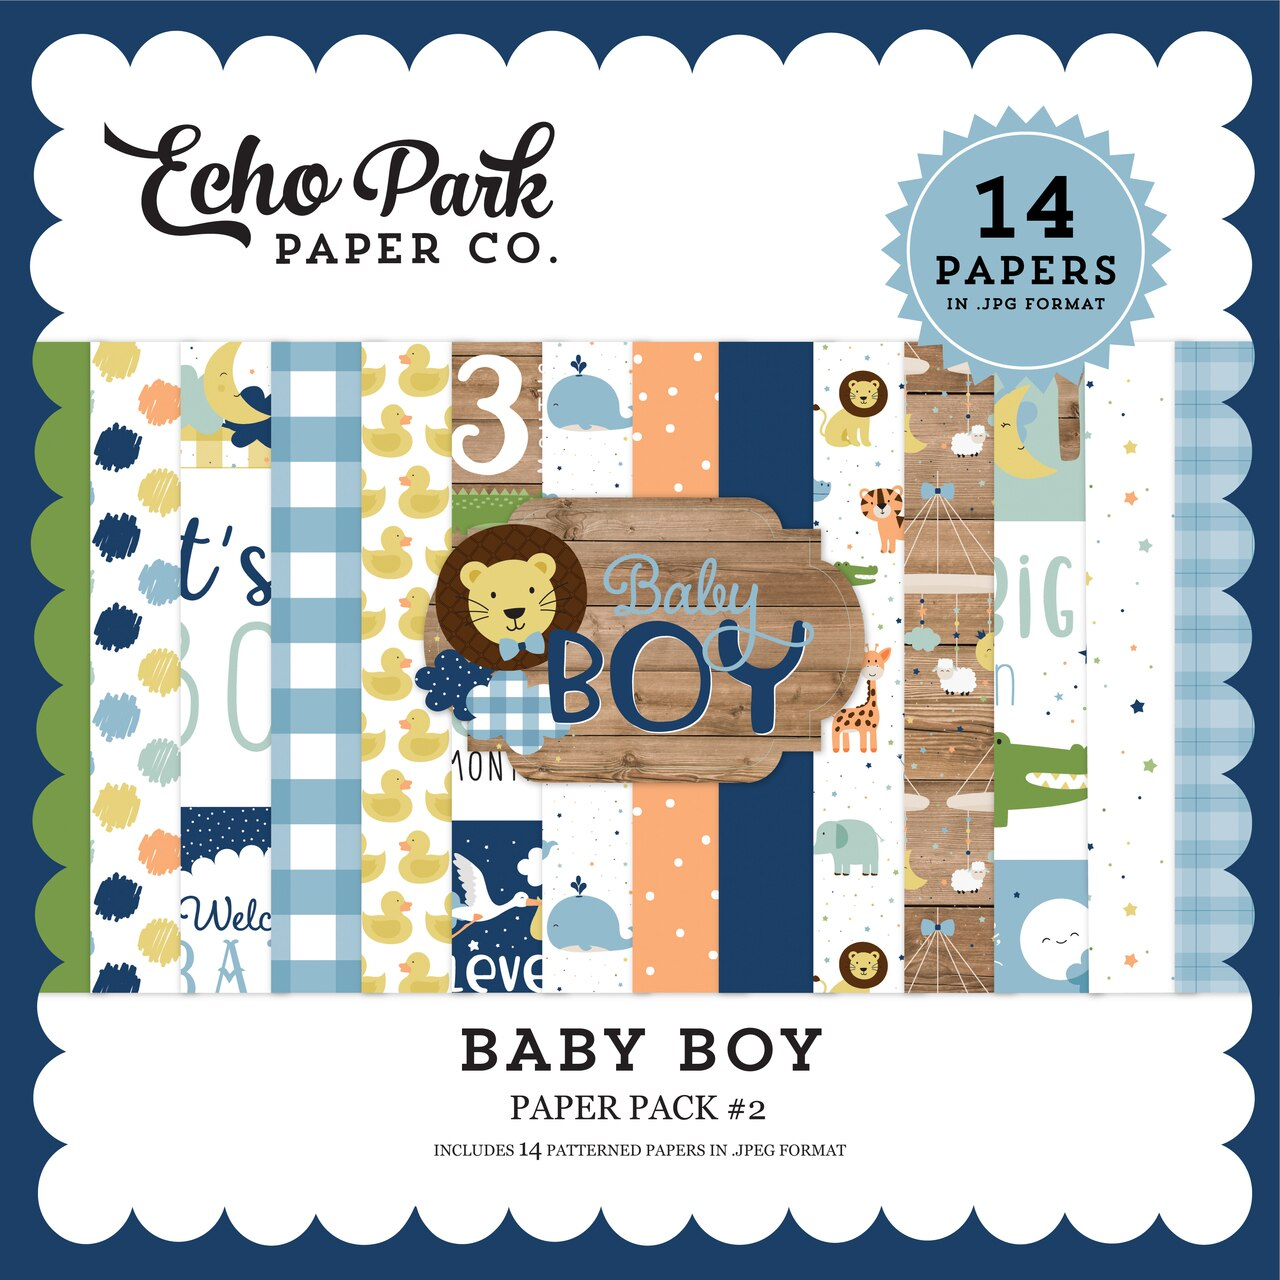 Baby Boy Paper Pack #2